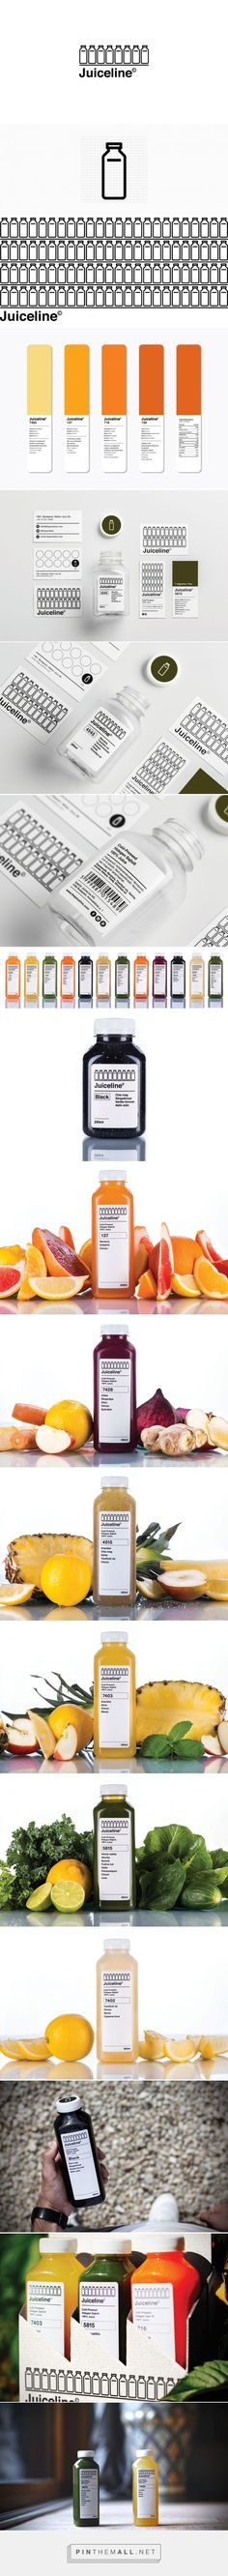 Juiceline packaging design by Kissmiklos (Hungary)…: